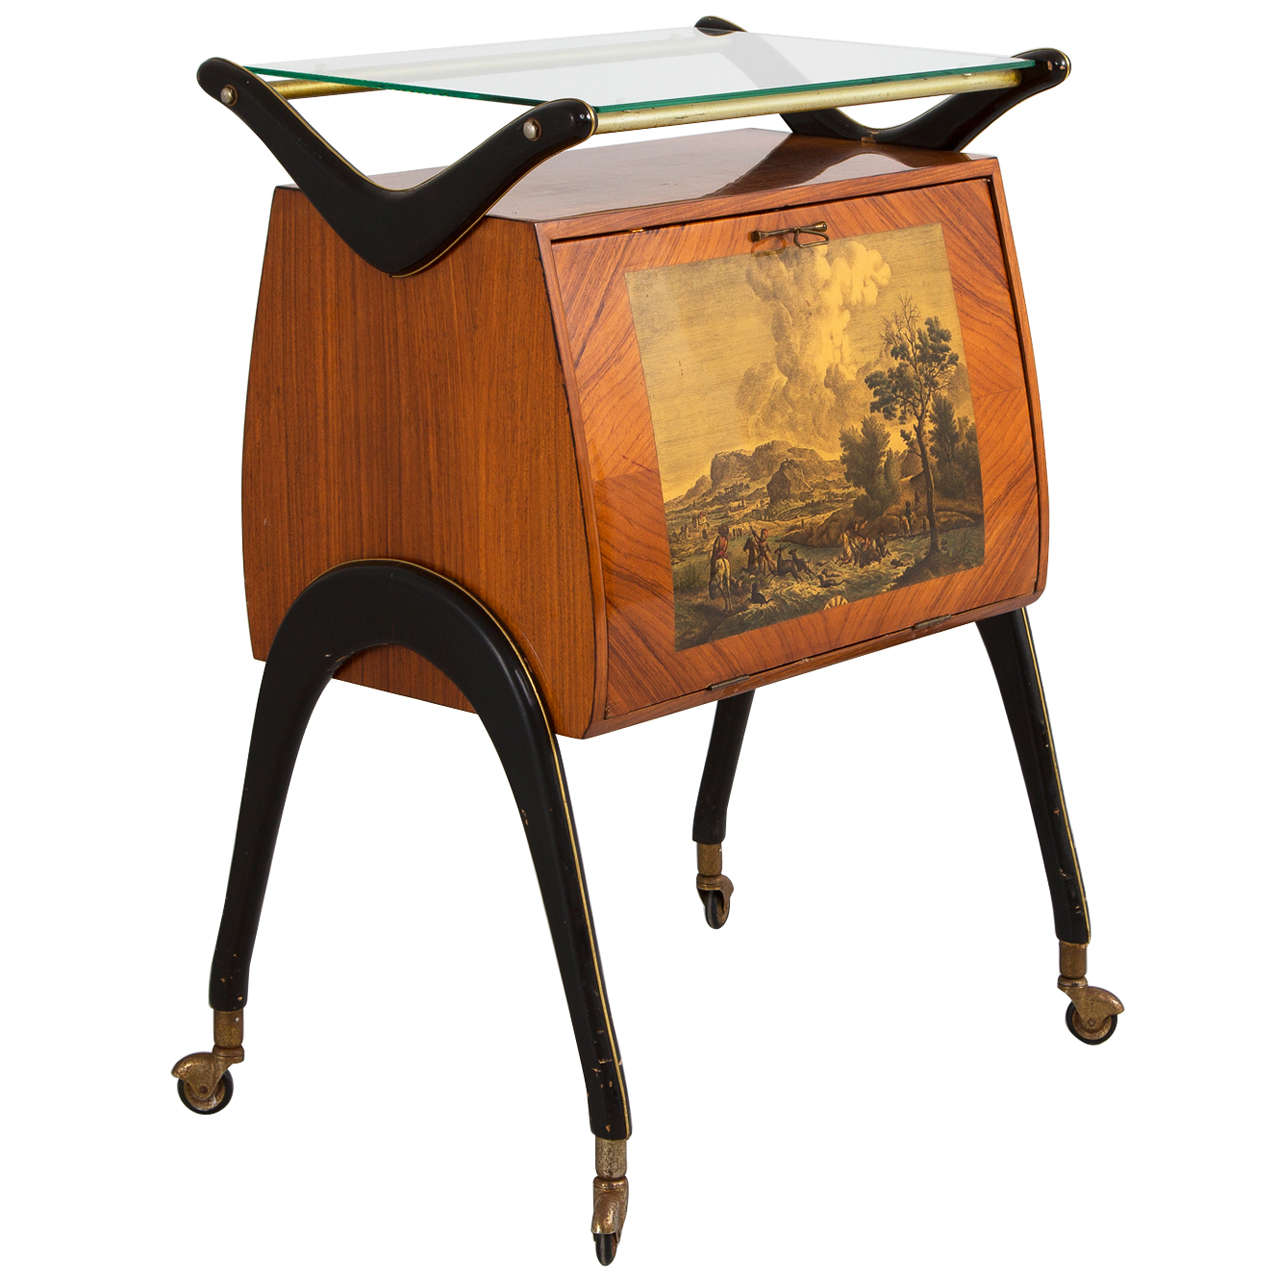 Attributed to Cesare Lacca Dry Bar Trolley, circa 1955